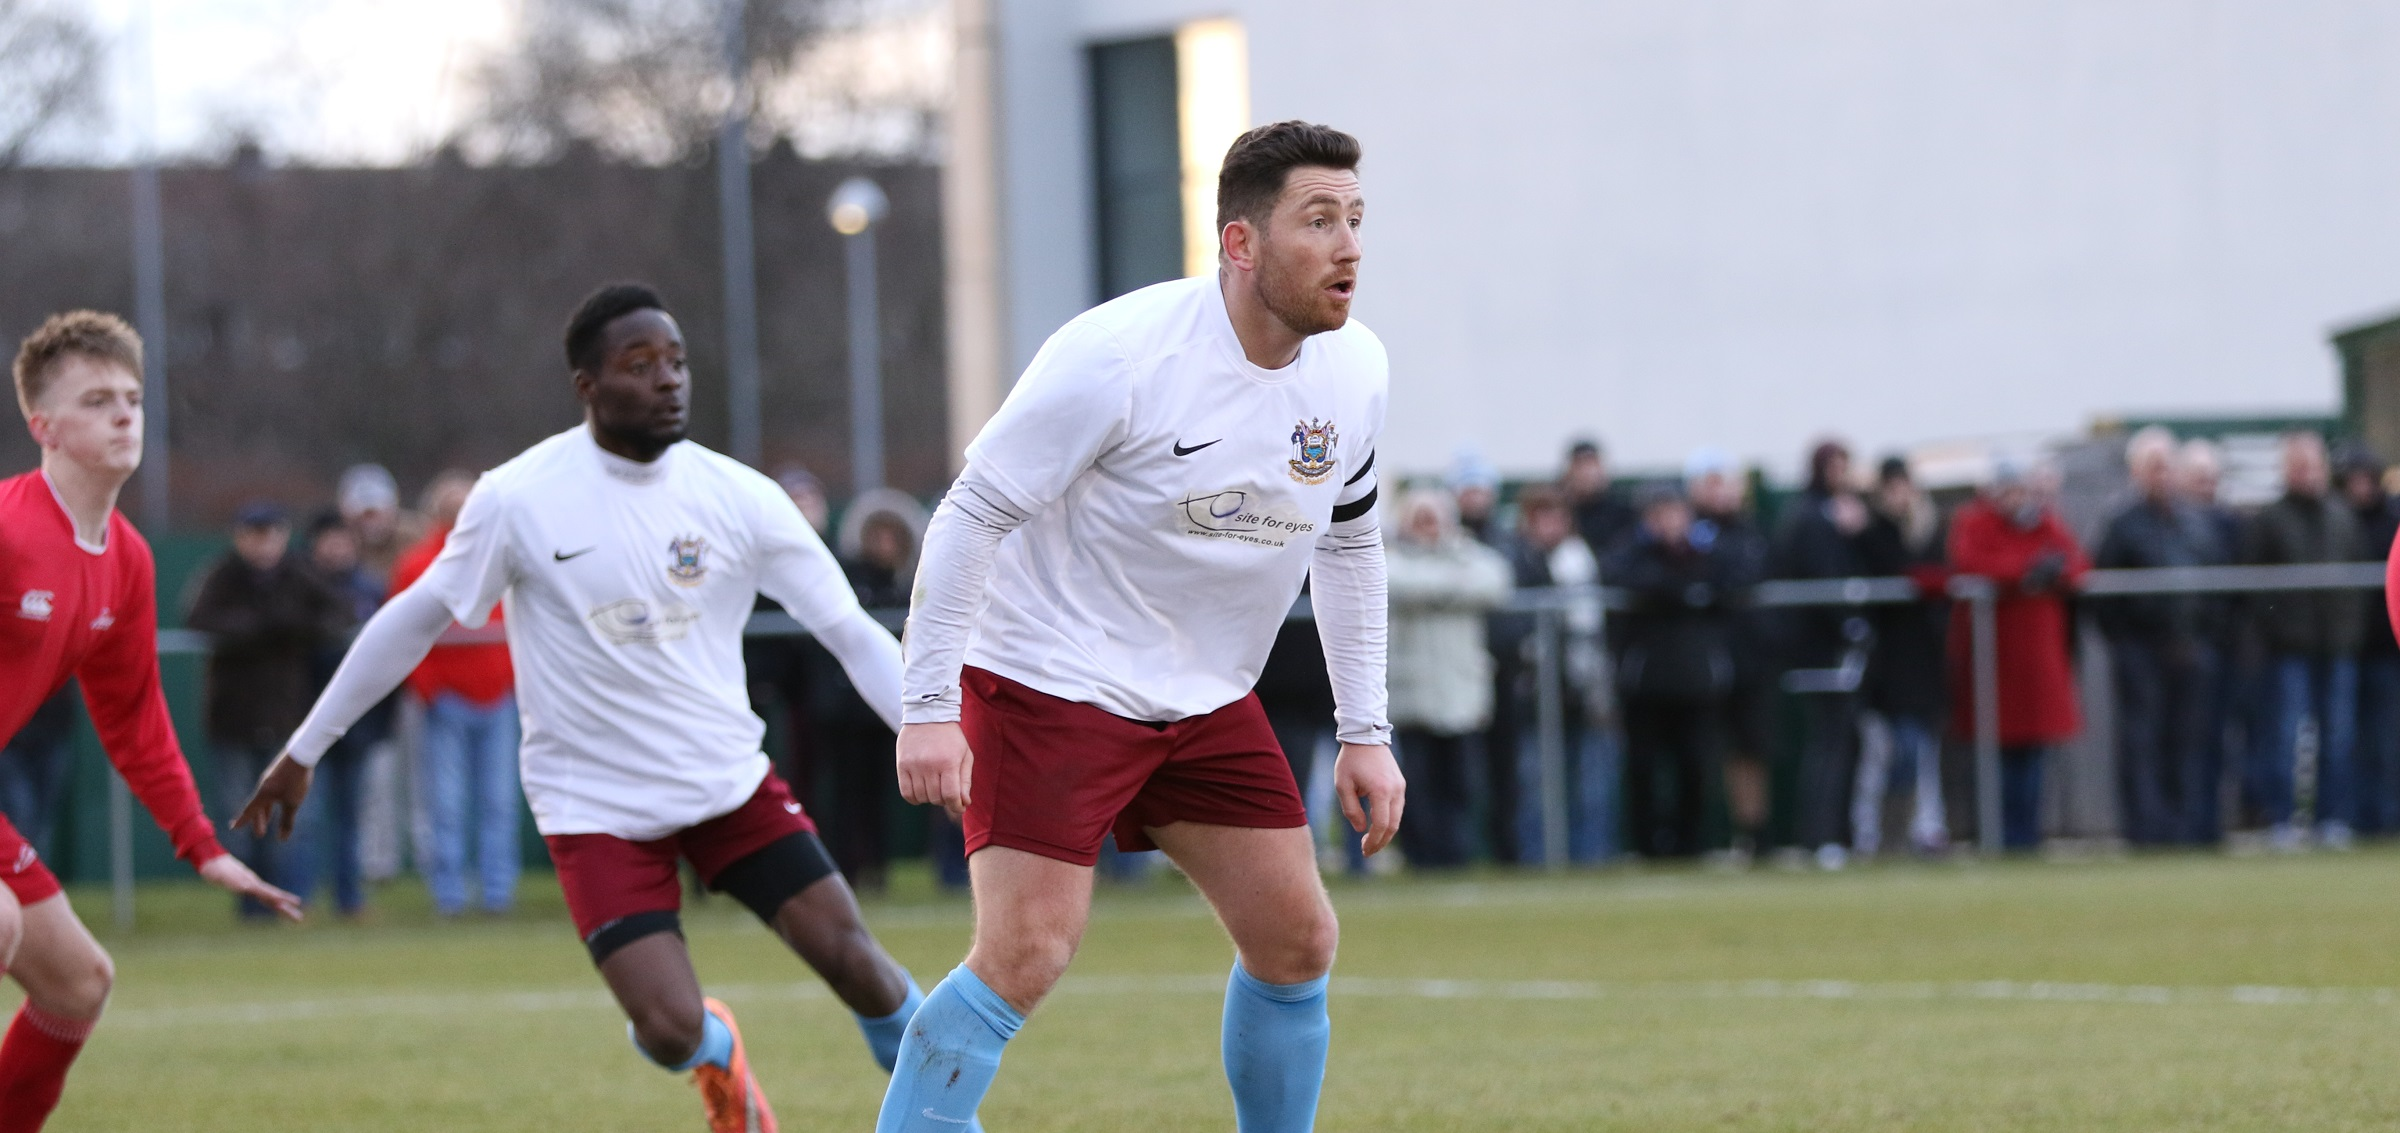 VIDEO: Leepaul Scroggins delighted to be back after helping Shields to vital win